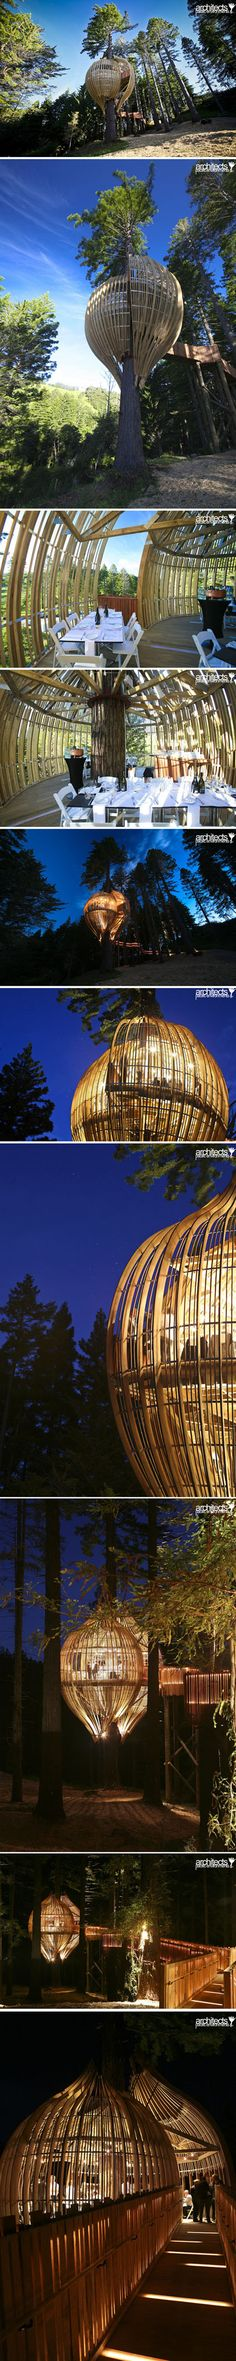 Yellow Treehouse - Pacific Environments Architects. #uniquedesigns #treehouse #architecture